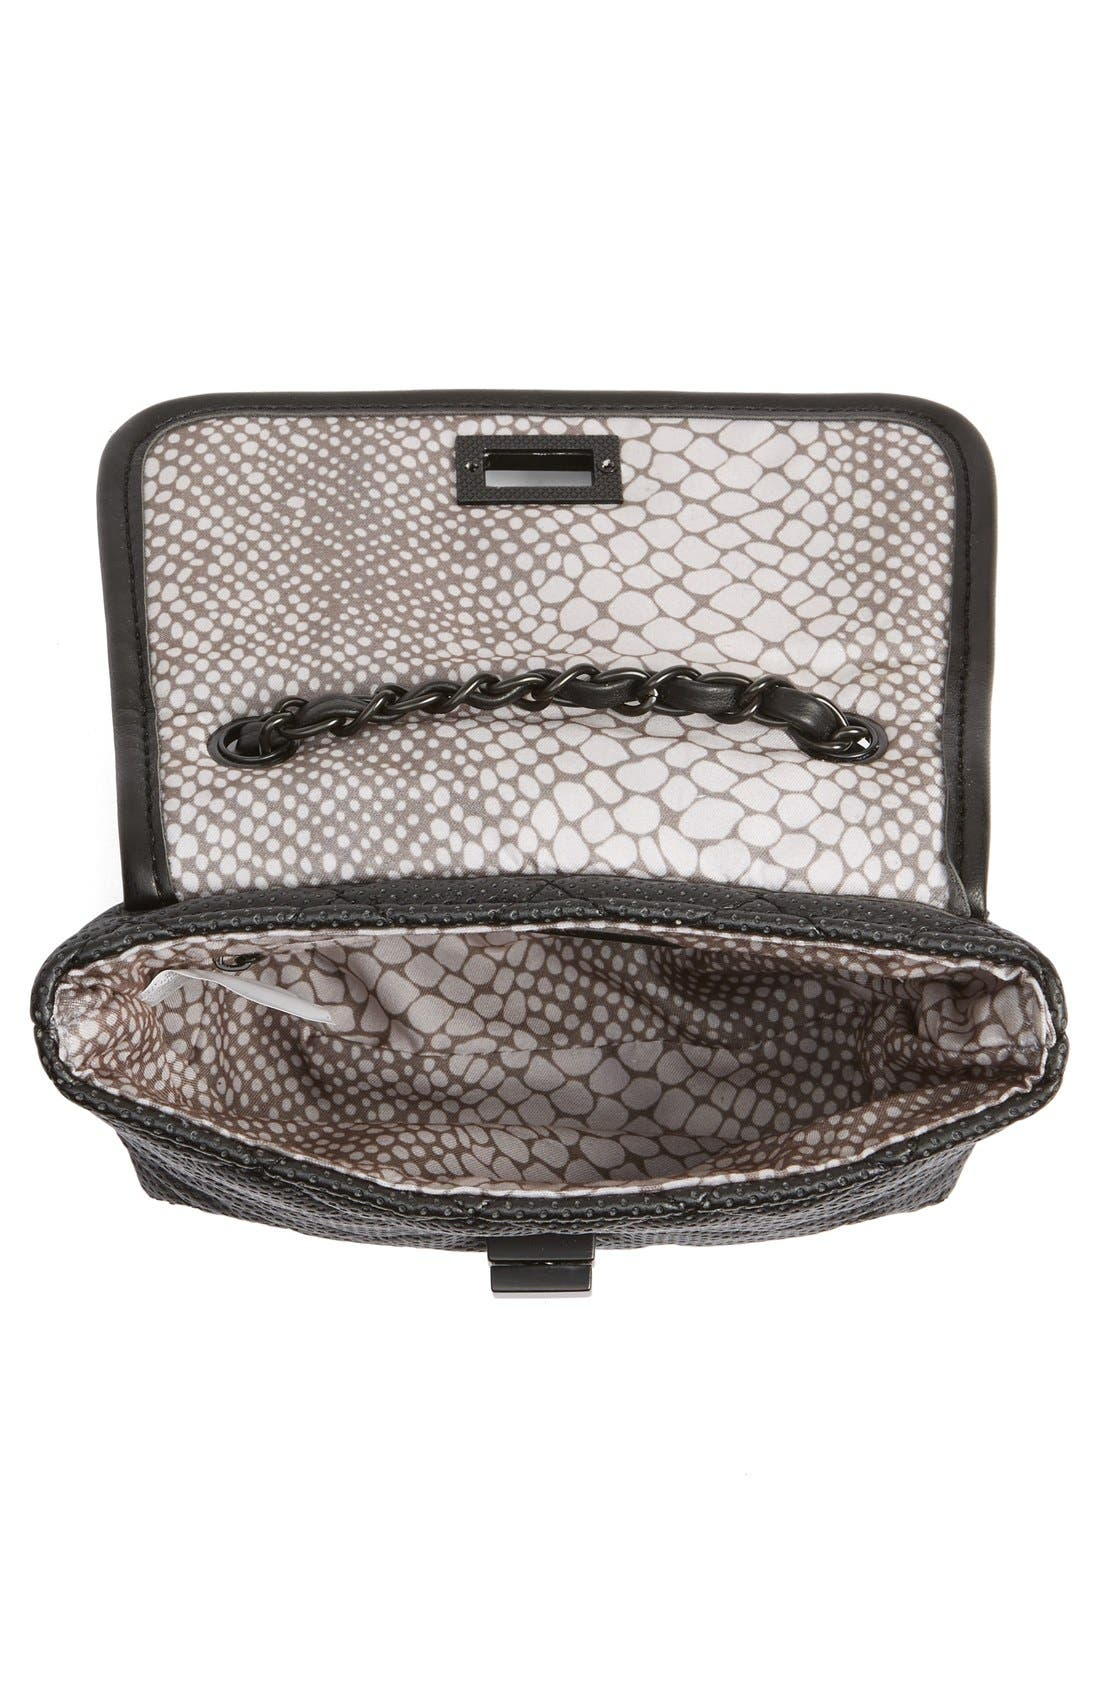 Alternate Image 3  - Steve Madden 'B Clarre' Perforated & Quilted Faux Leather Crossbody Bag